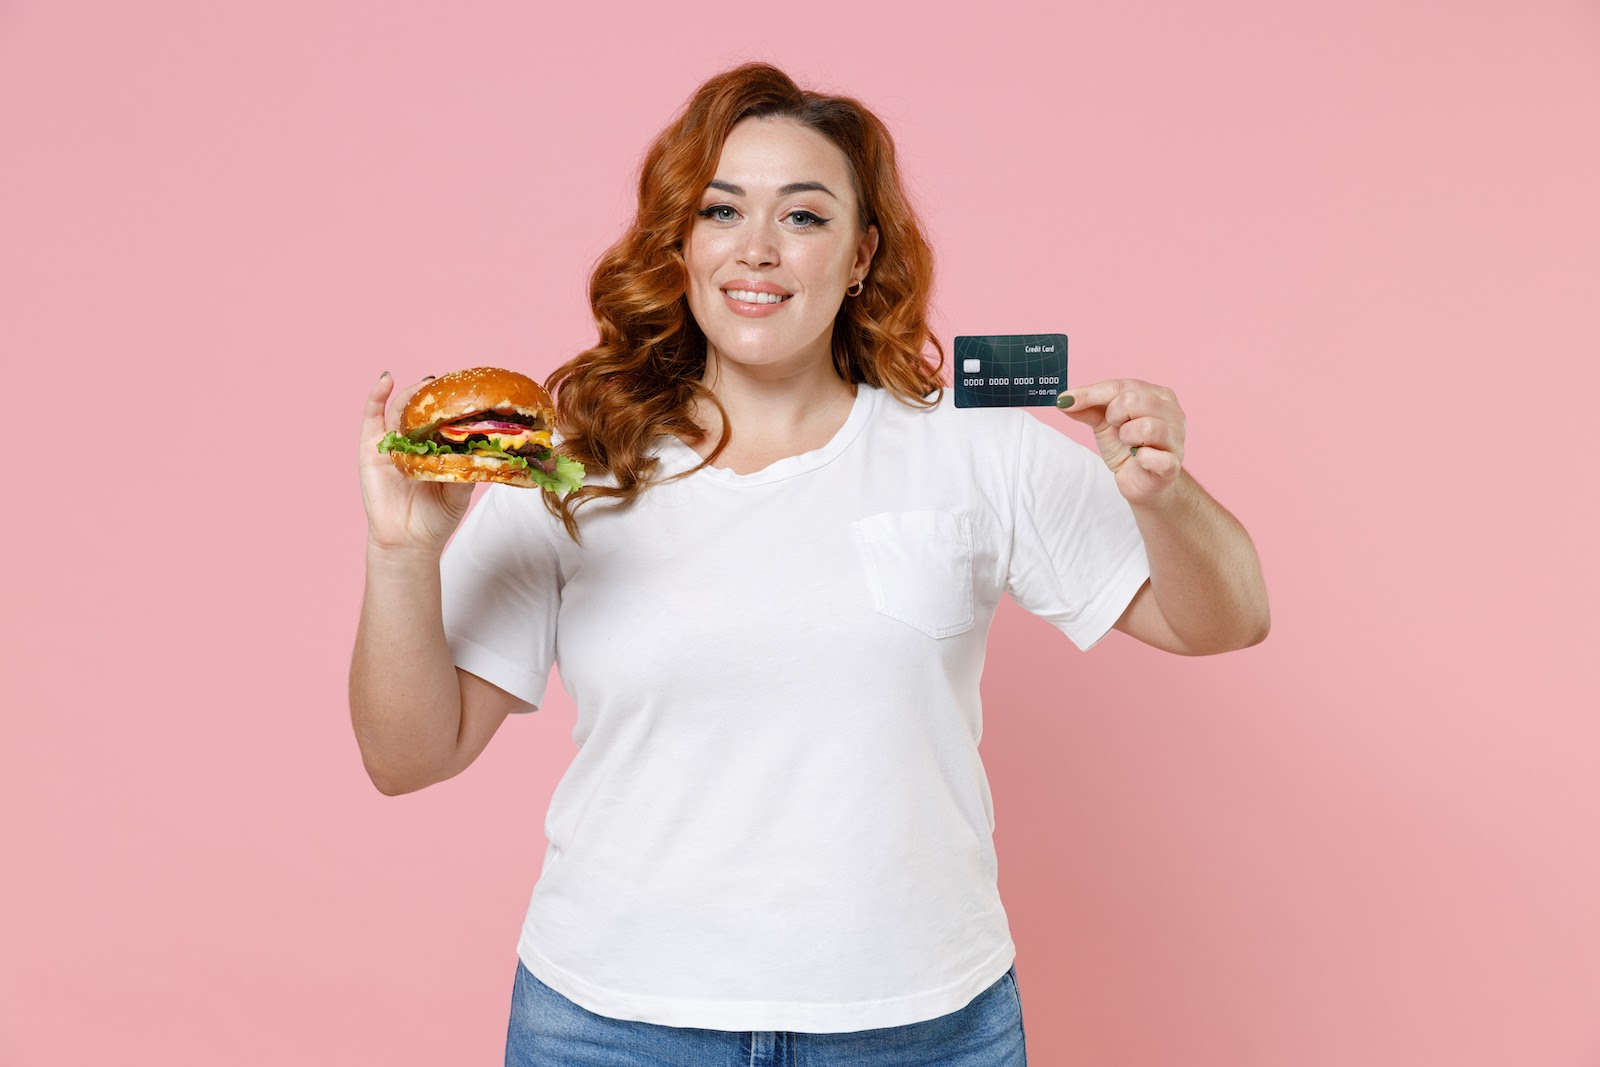 Virtual catering ideas: A woman holds a burger she bought with a virtual credit card